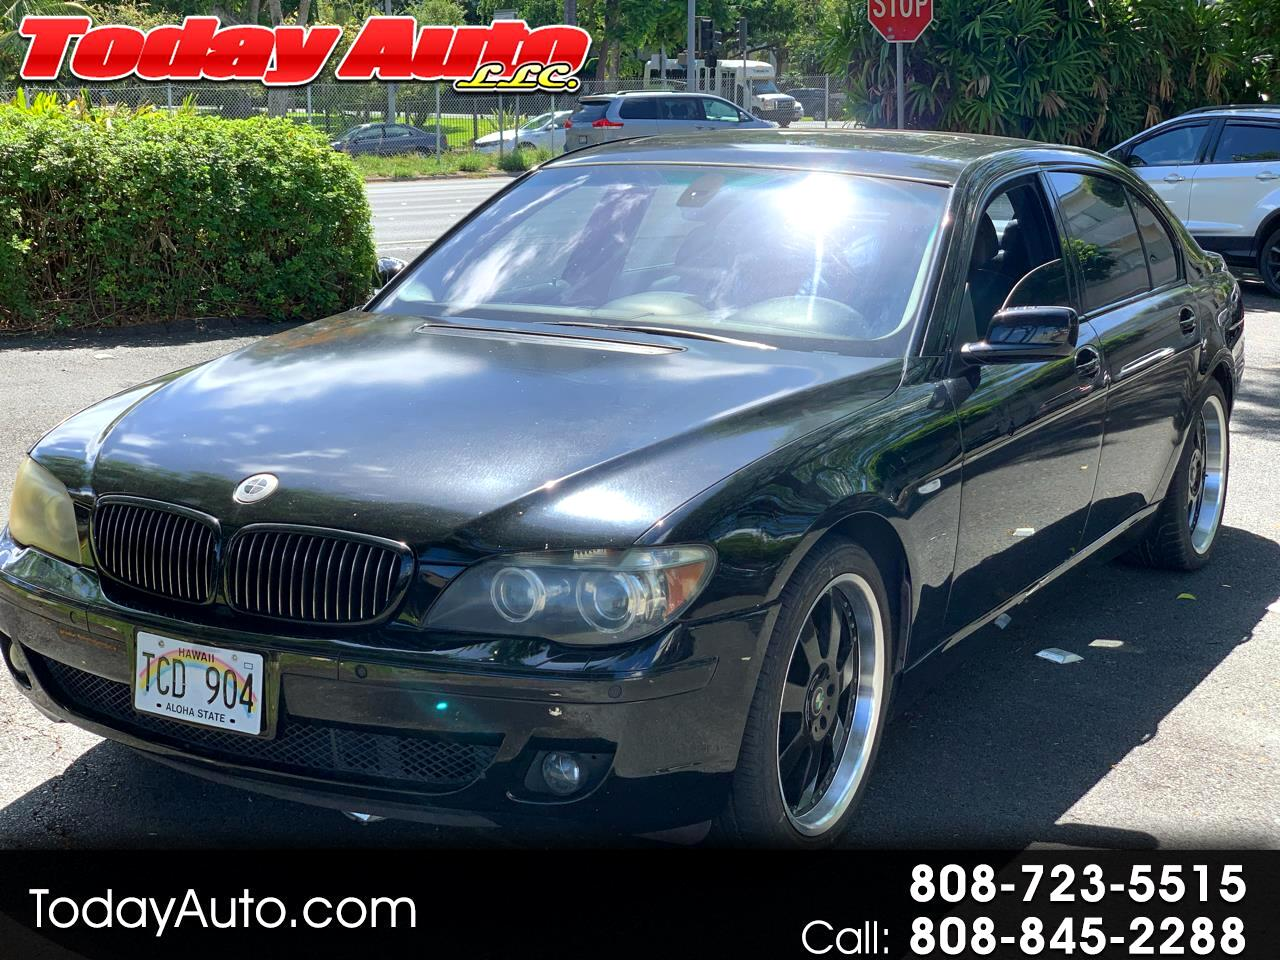 BMW 7 Series 760Li 4dr Sdn 2006